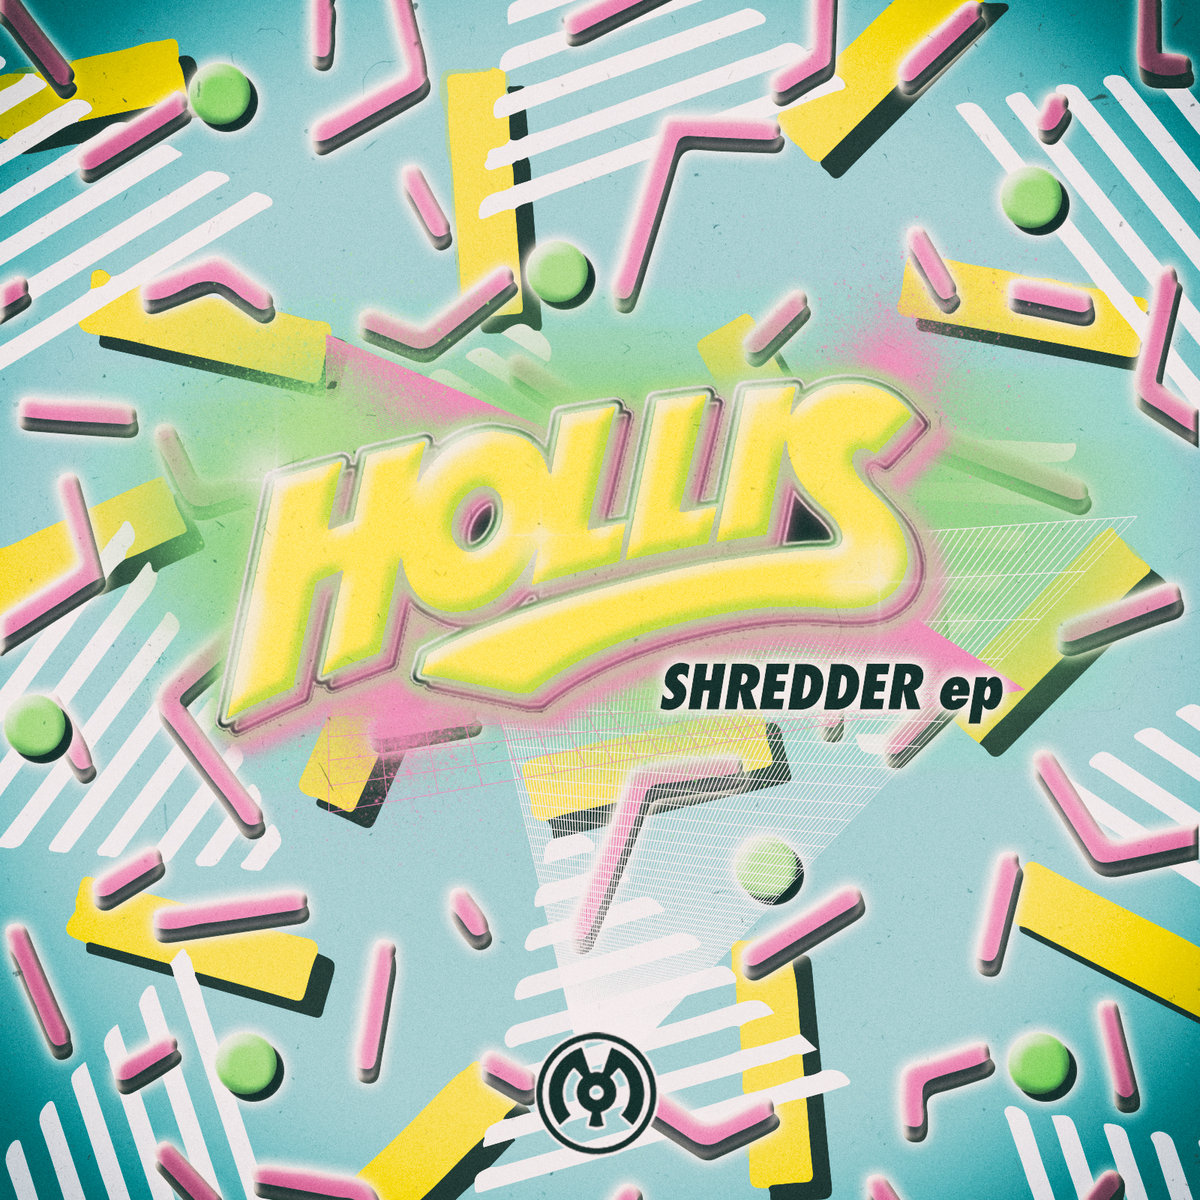 Hollis - Check Mate @ 'Shredder EP' album (electronic, dubstep)